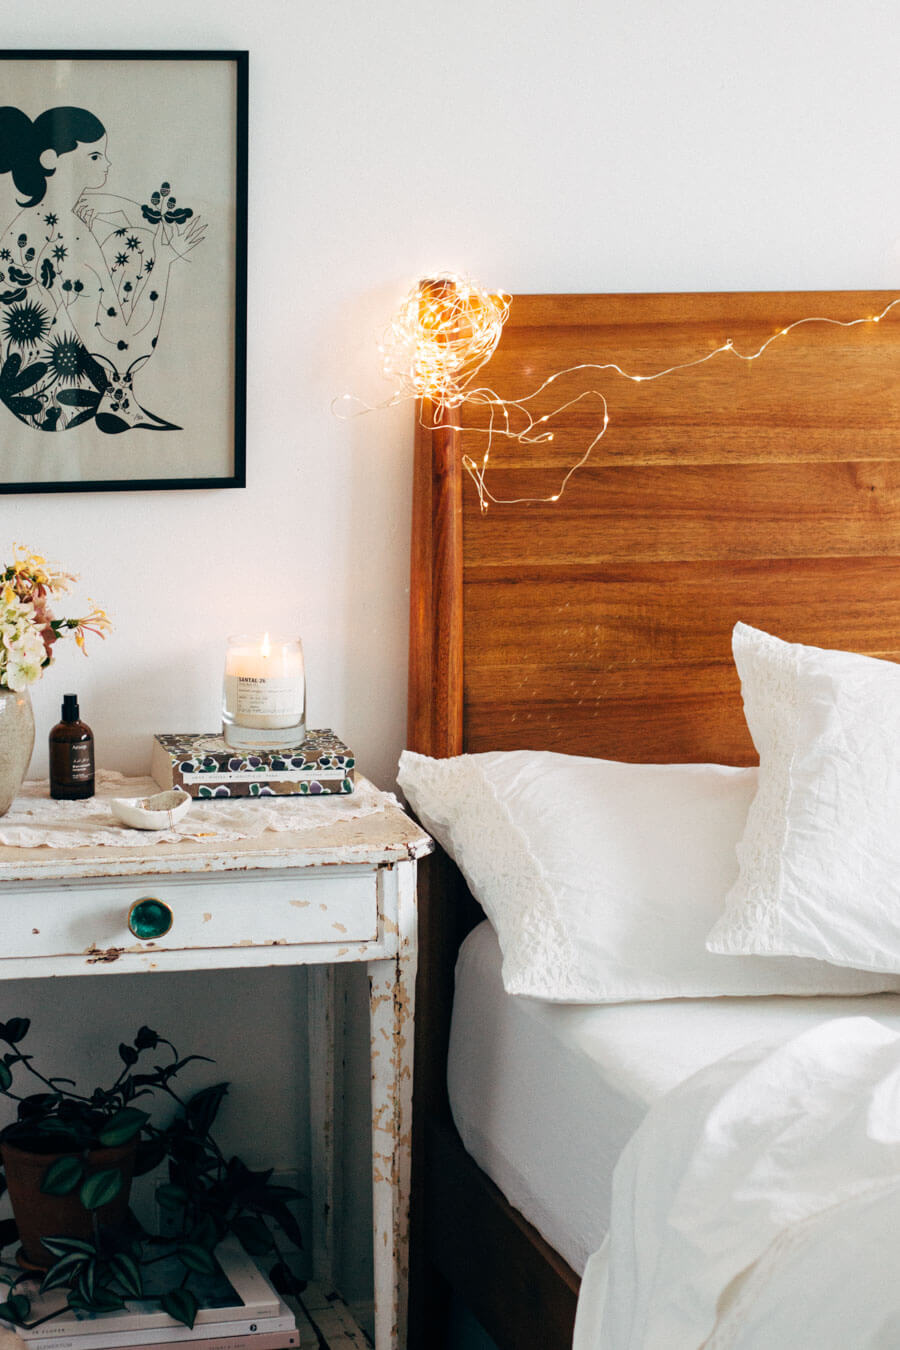 Fairy Lights on the Bedpost